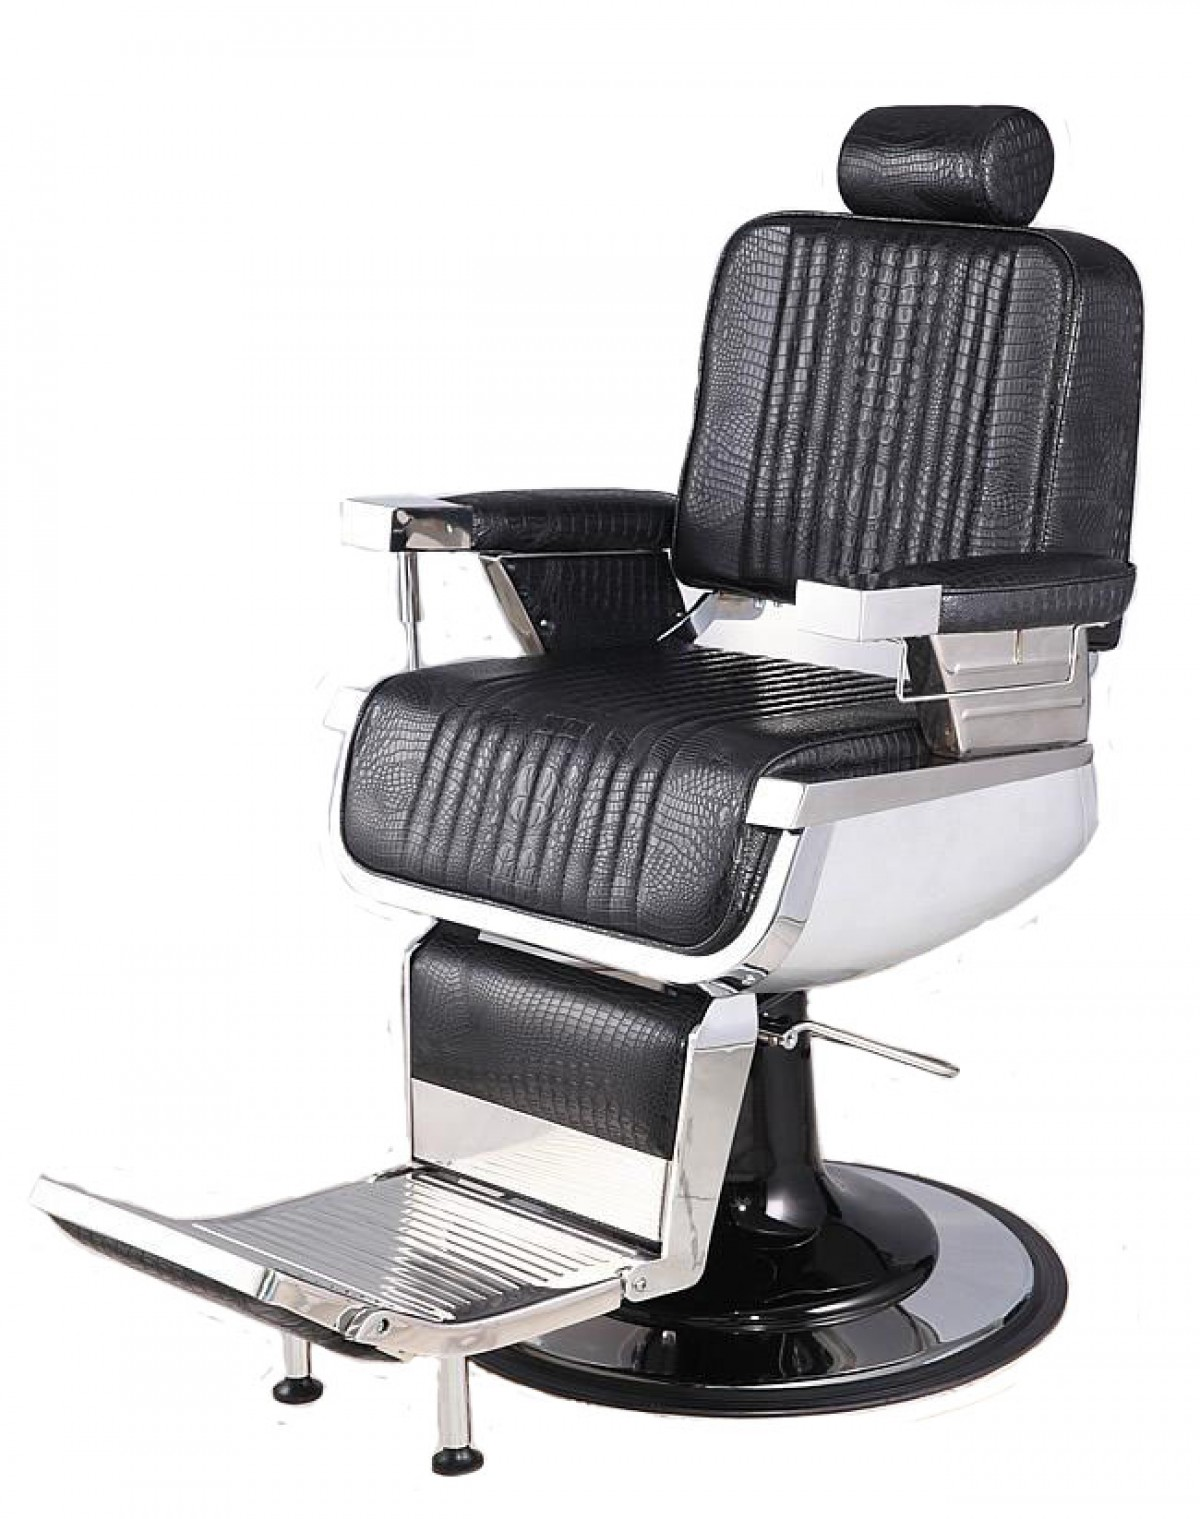 wholesale barber chairs - barber chairs, barber stations, barber